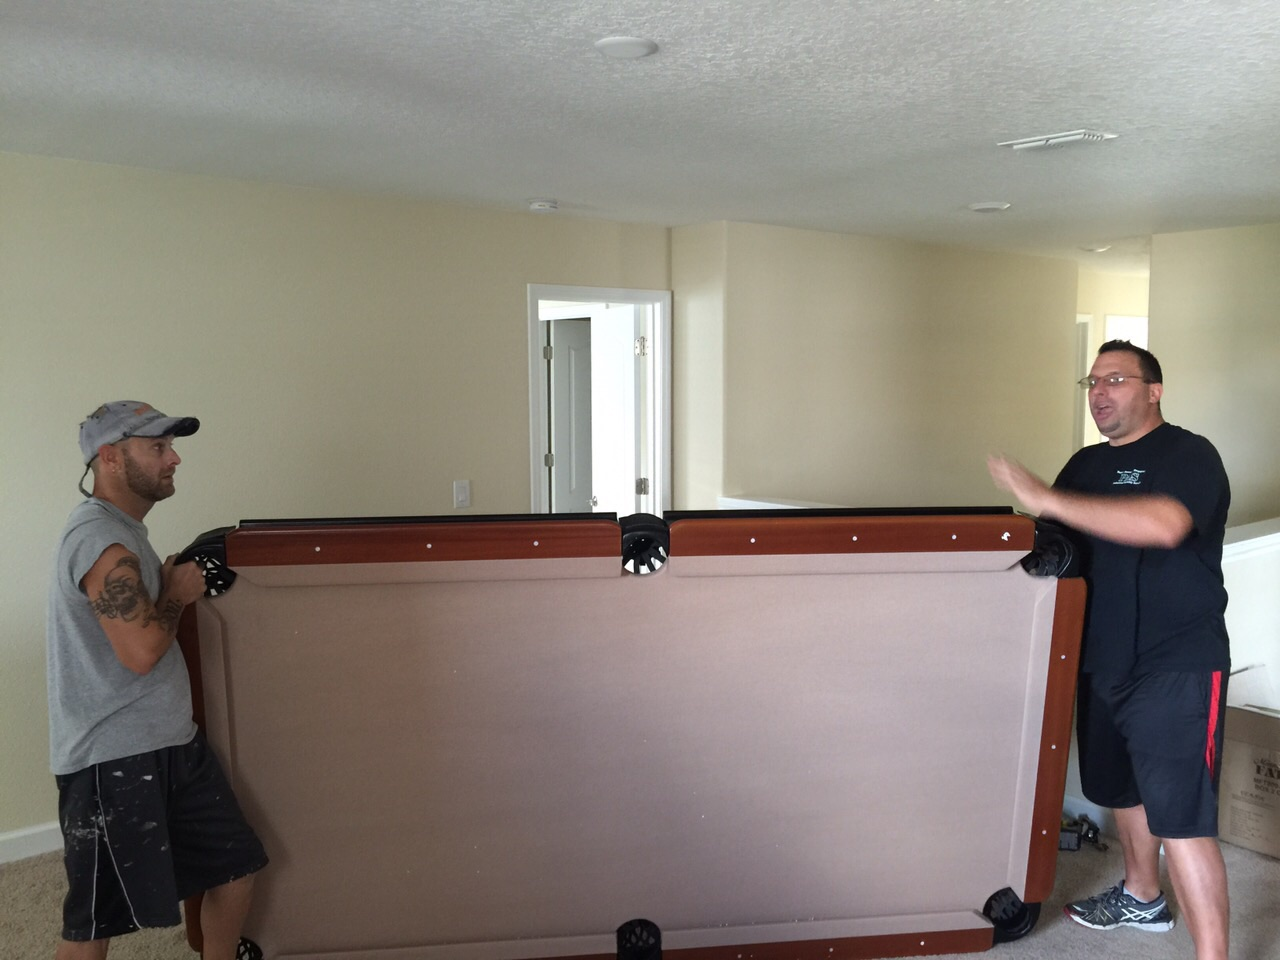 Setting Up A Pool Table Pool Table Movers Dallas Pool Table Movers Table Pooltable